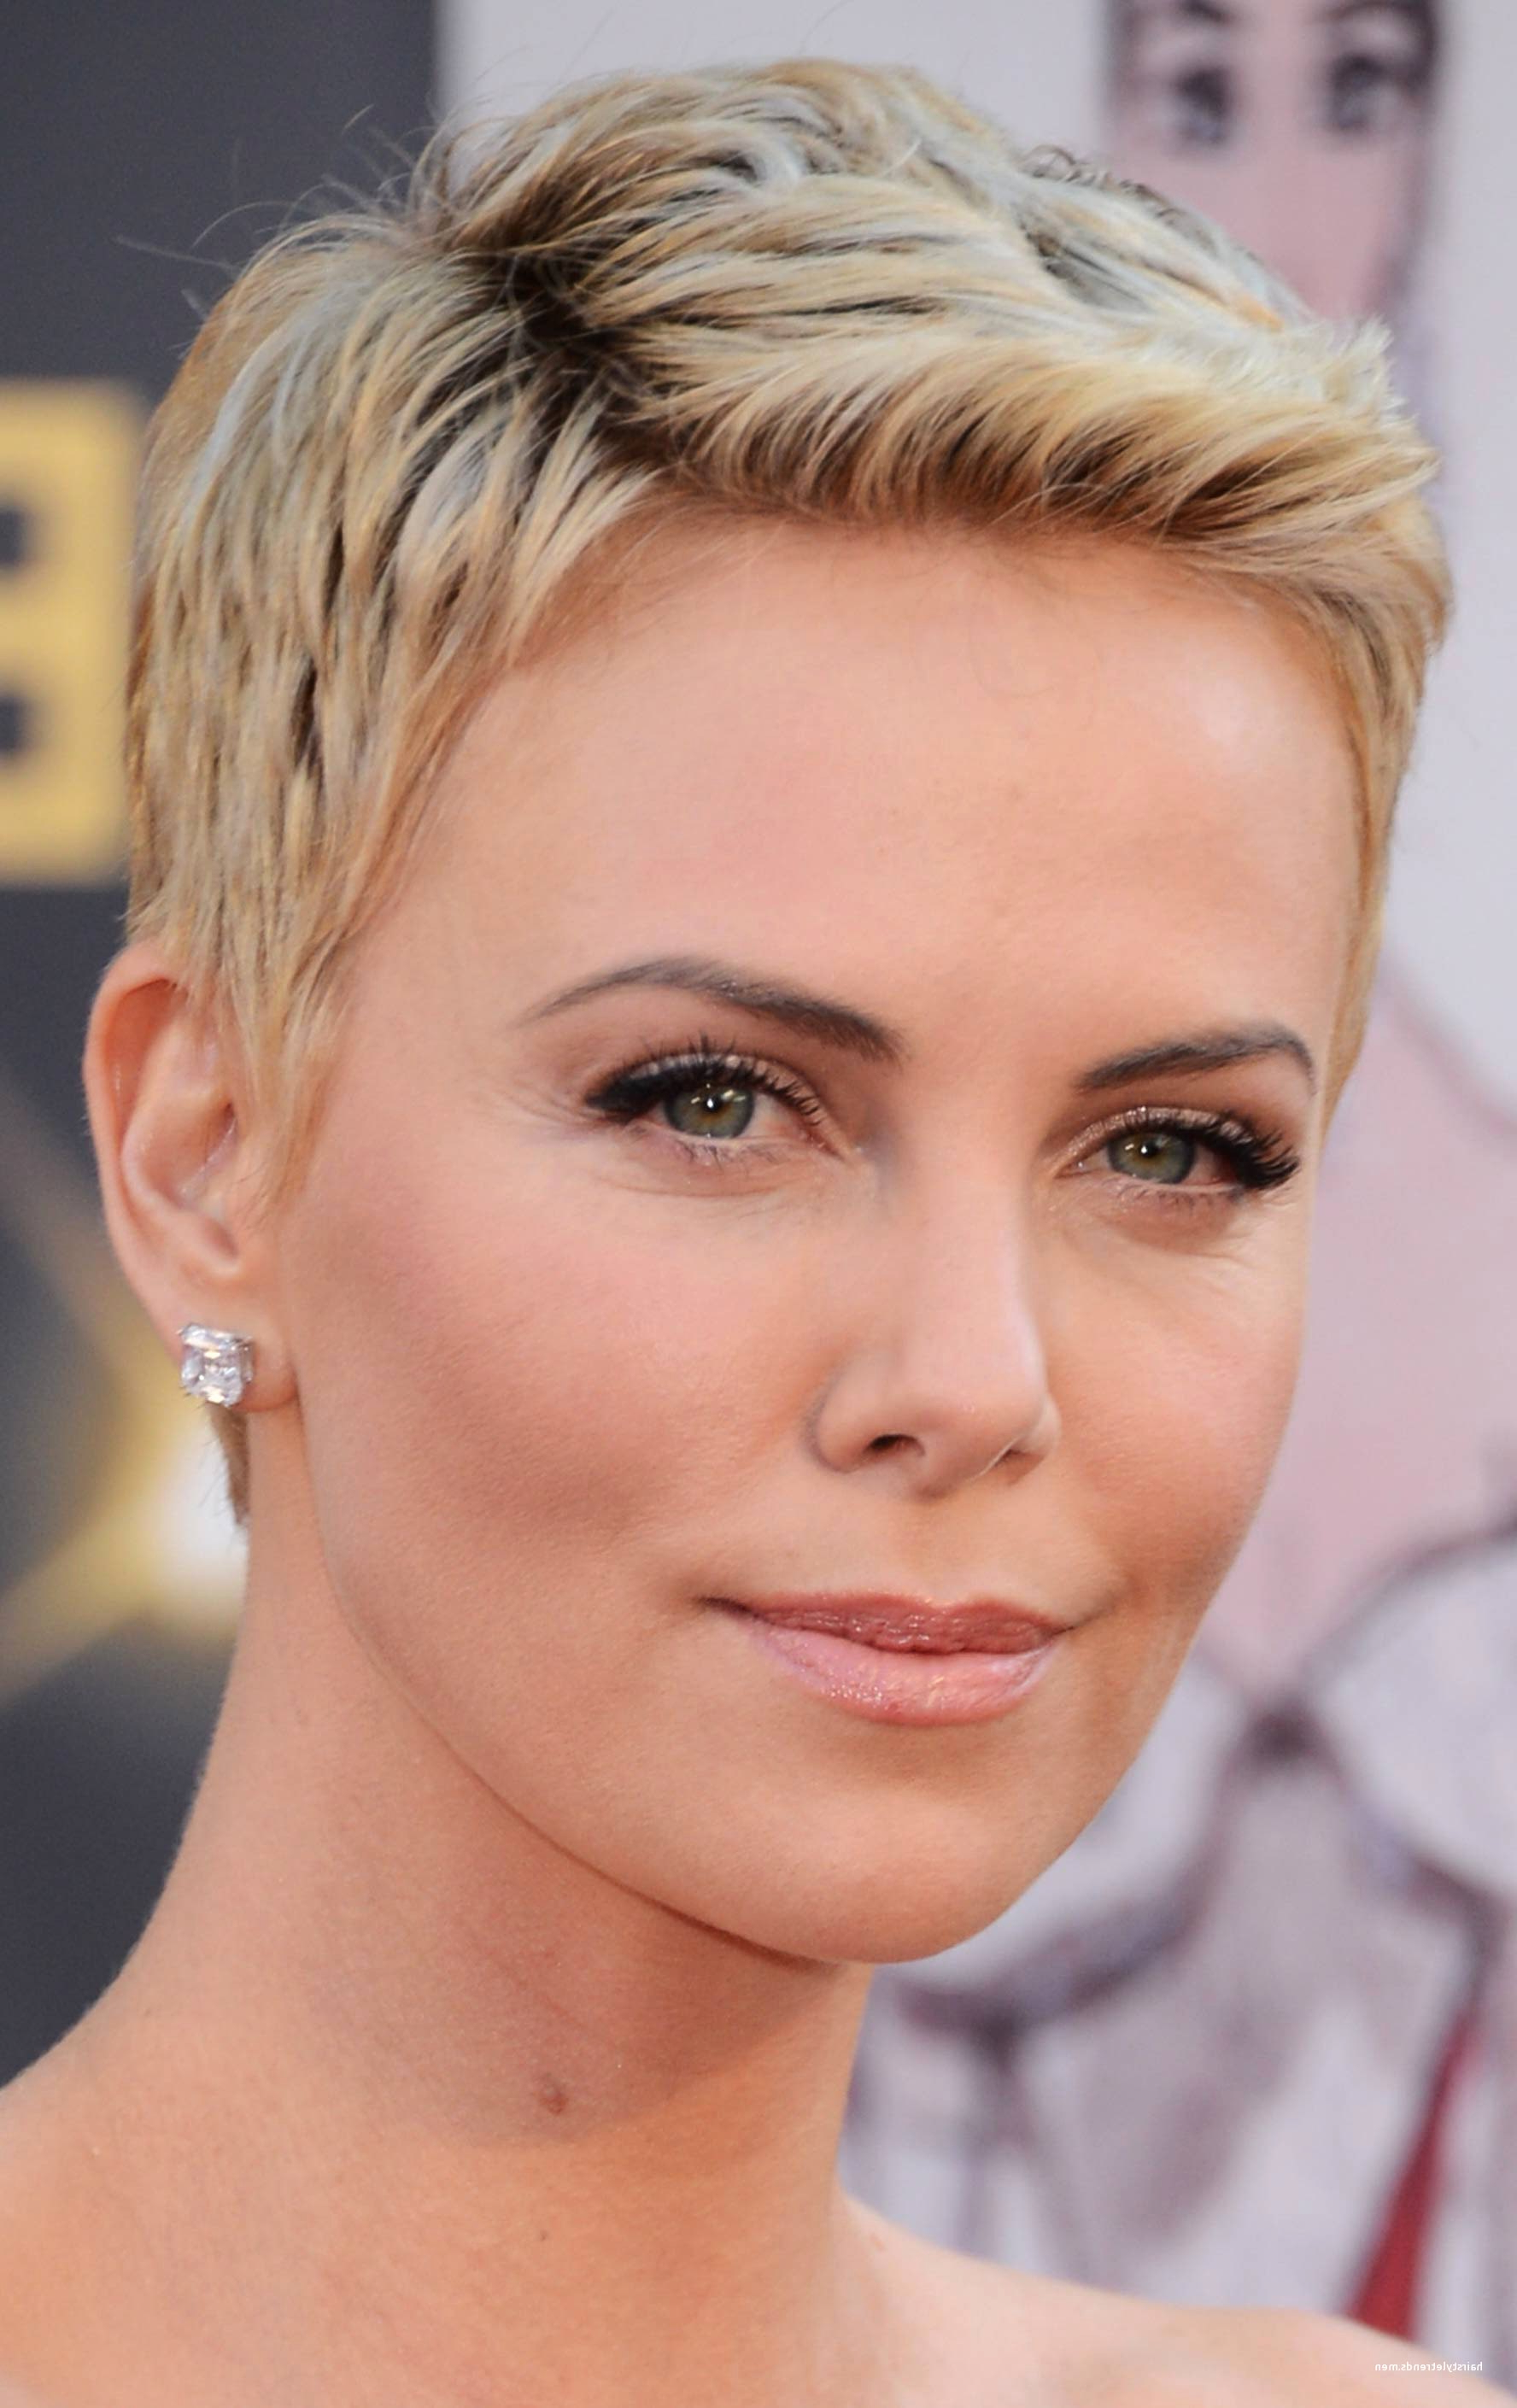 Unique Cute Edgy Short Haircuts • Hairstyletrends Intended For Edgy Short Haircuts (View 25 of 25)